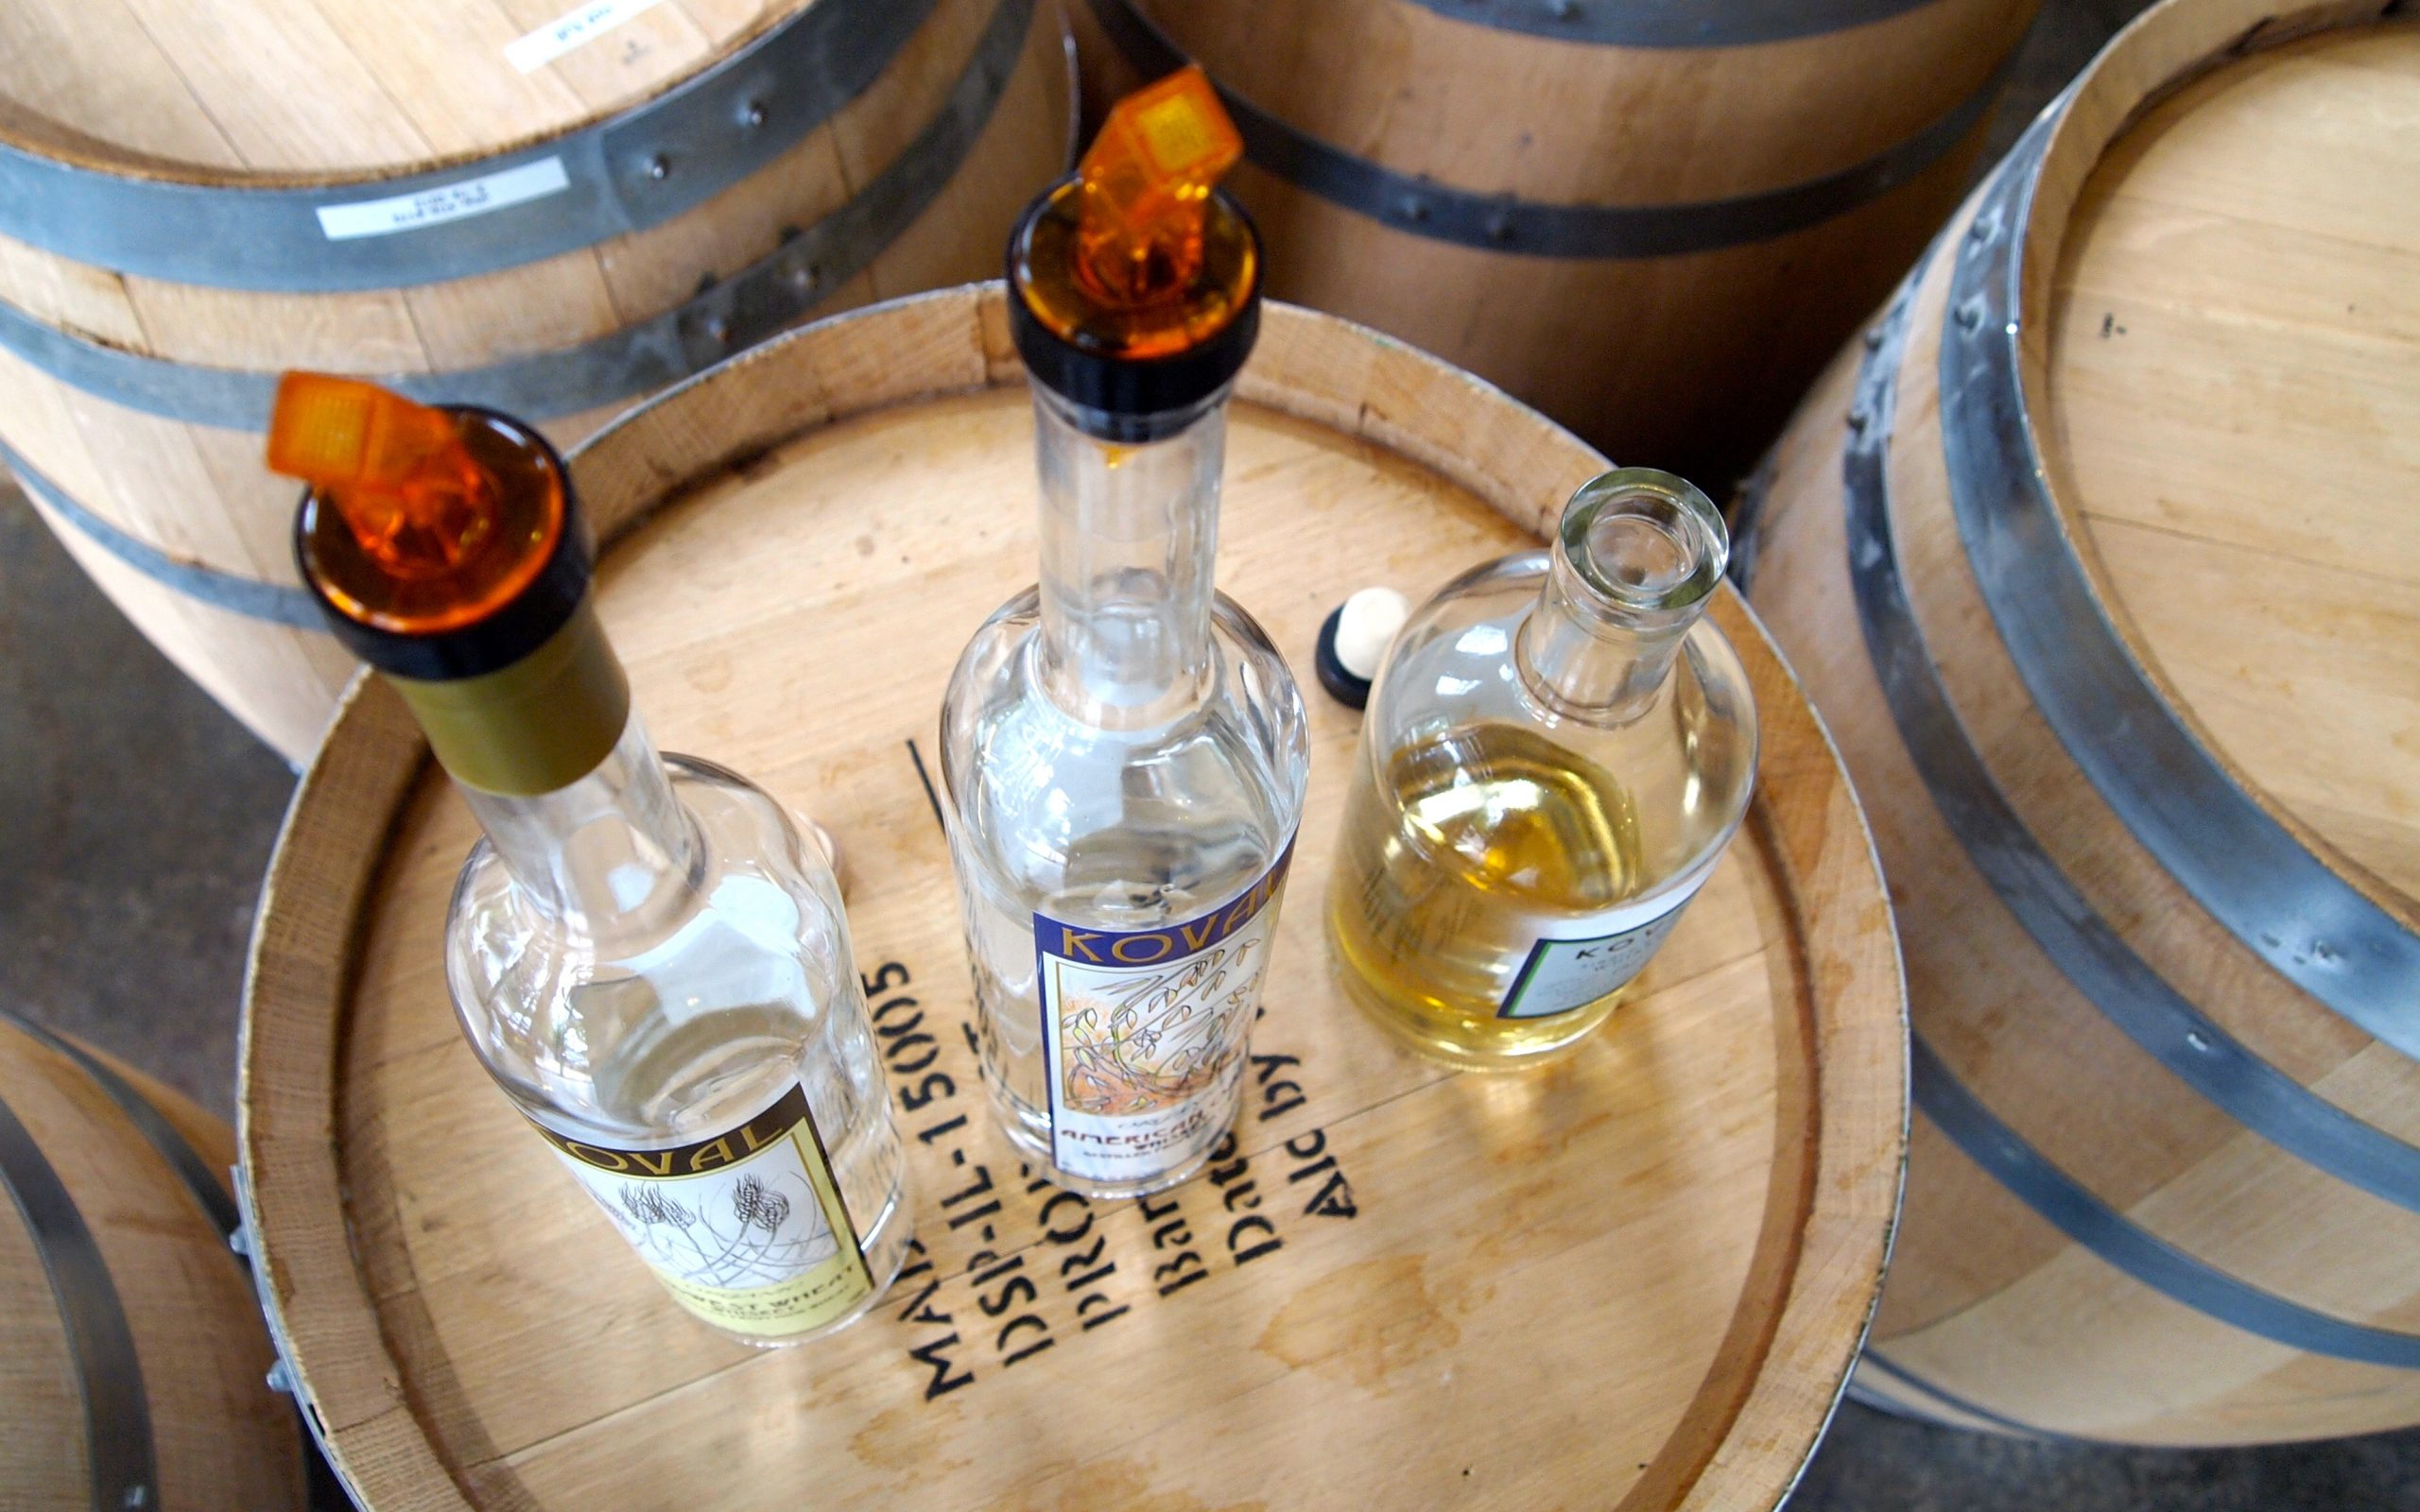 Koval spirits are featured at an Uncommon Ground dinner on Mon 3/21.